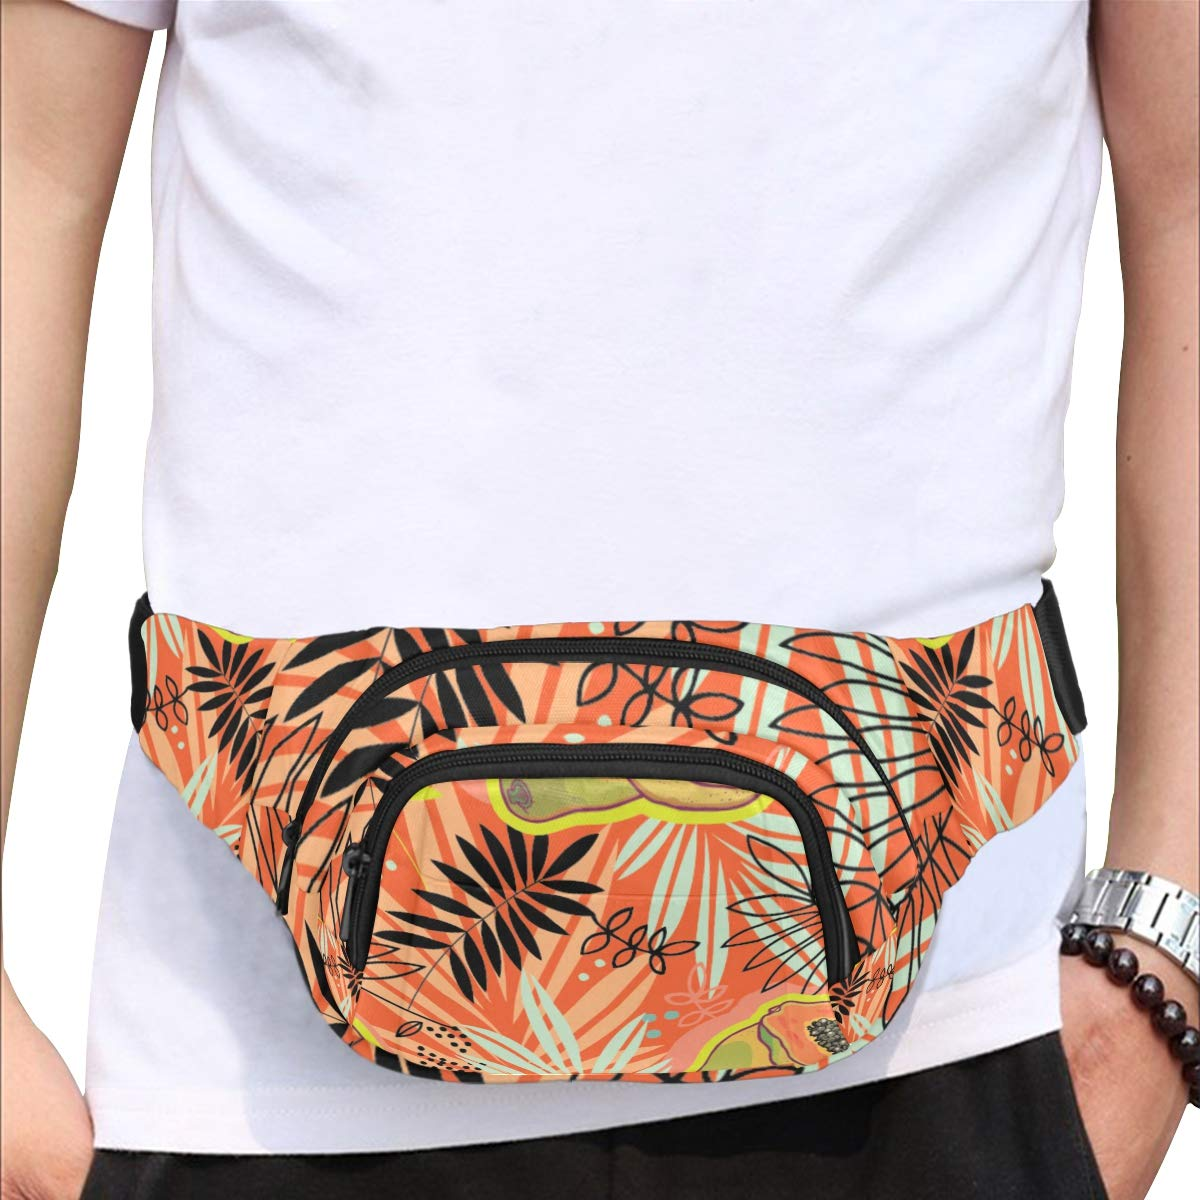 Tropical Plant Sketch Style Fenny Packs Waist Bags Adjustable Belt Waterproof Nylon Travel Running Sport Vacation Party For Men Women Boys Girls Kids